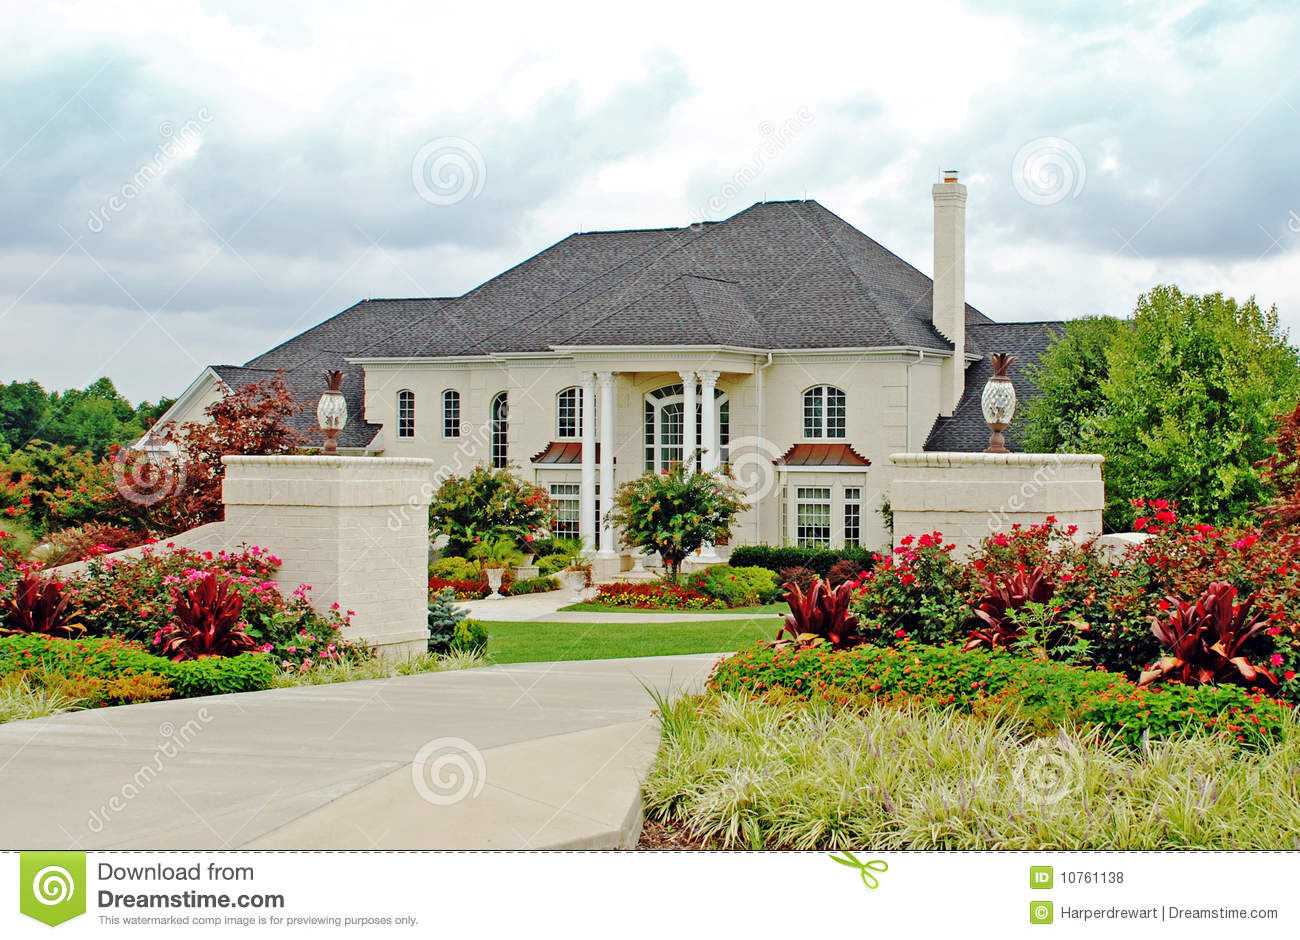 Luxury home 4 royalty free stock photos image 10761138 for Free luxury home images